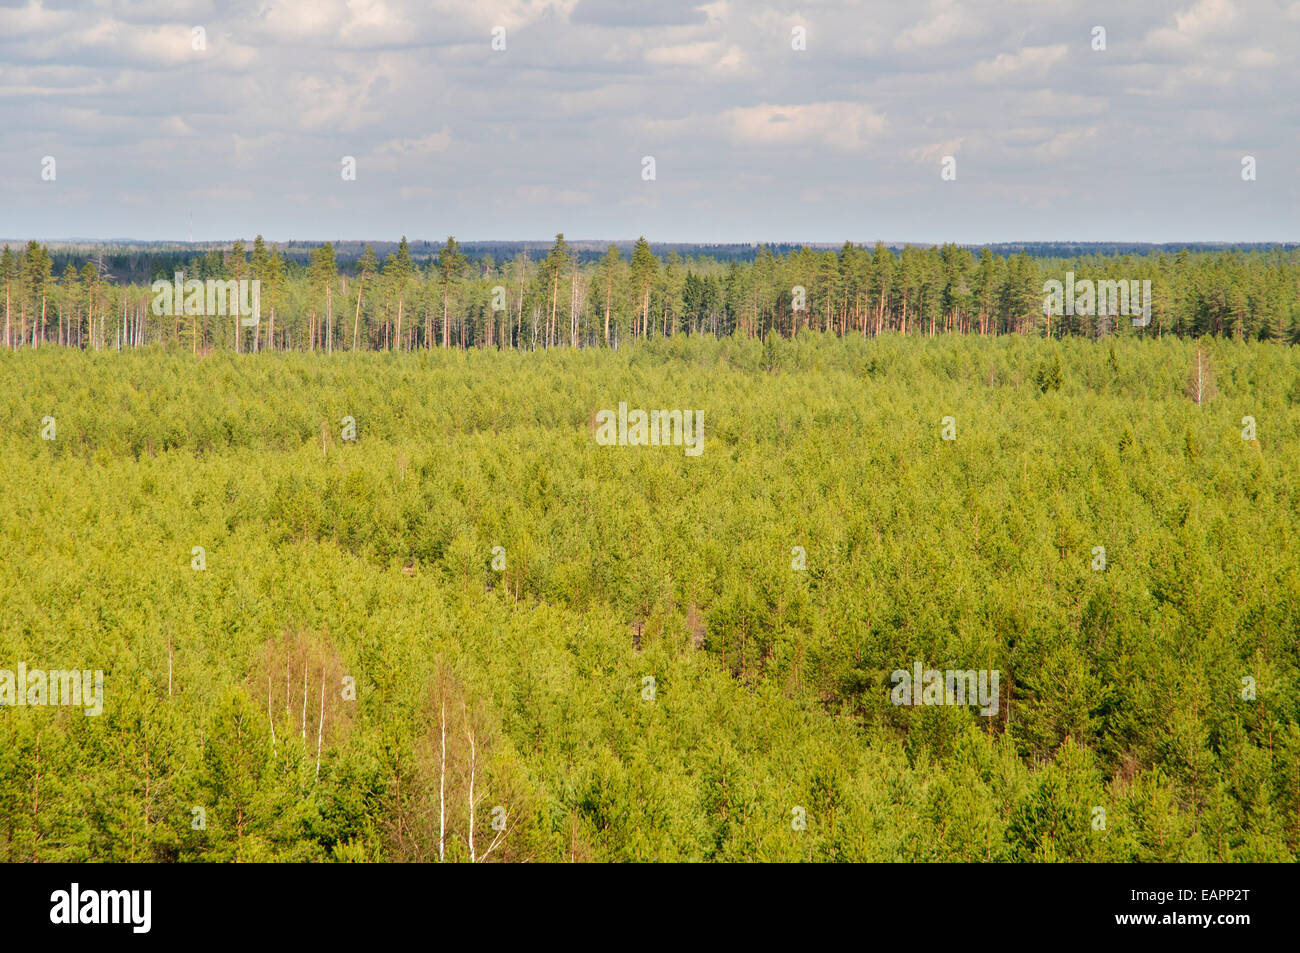 Forest plantations in northeast Latvia - Stock Image